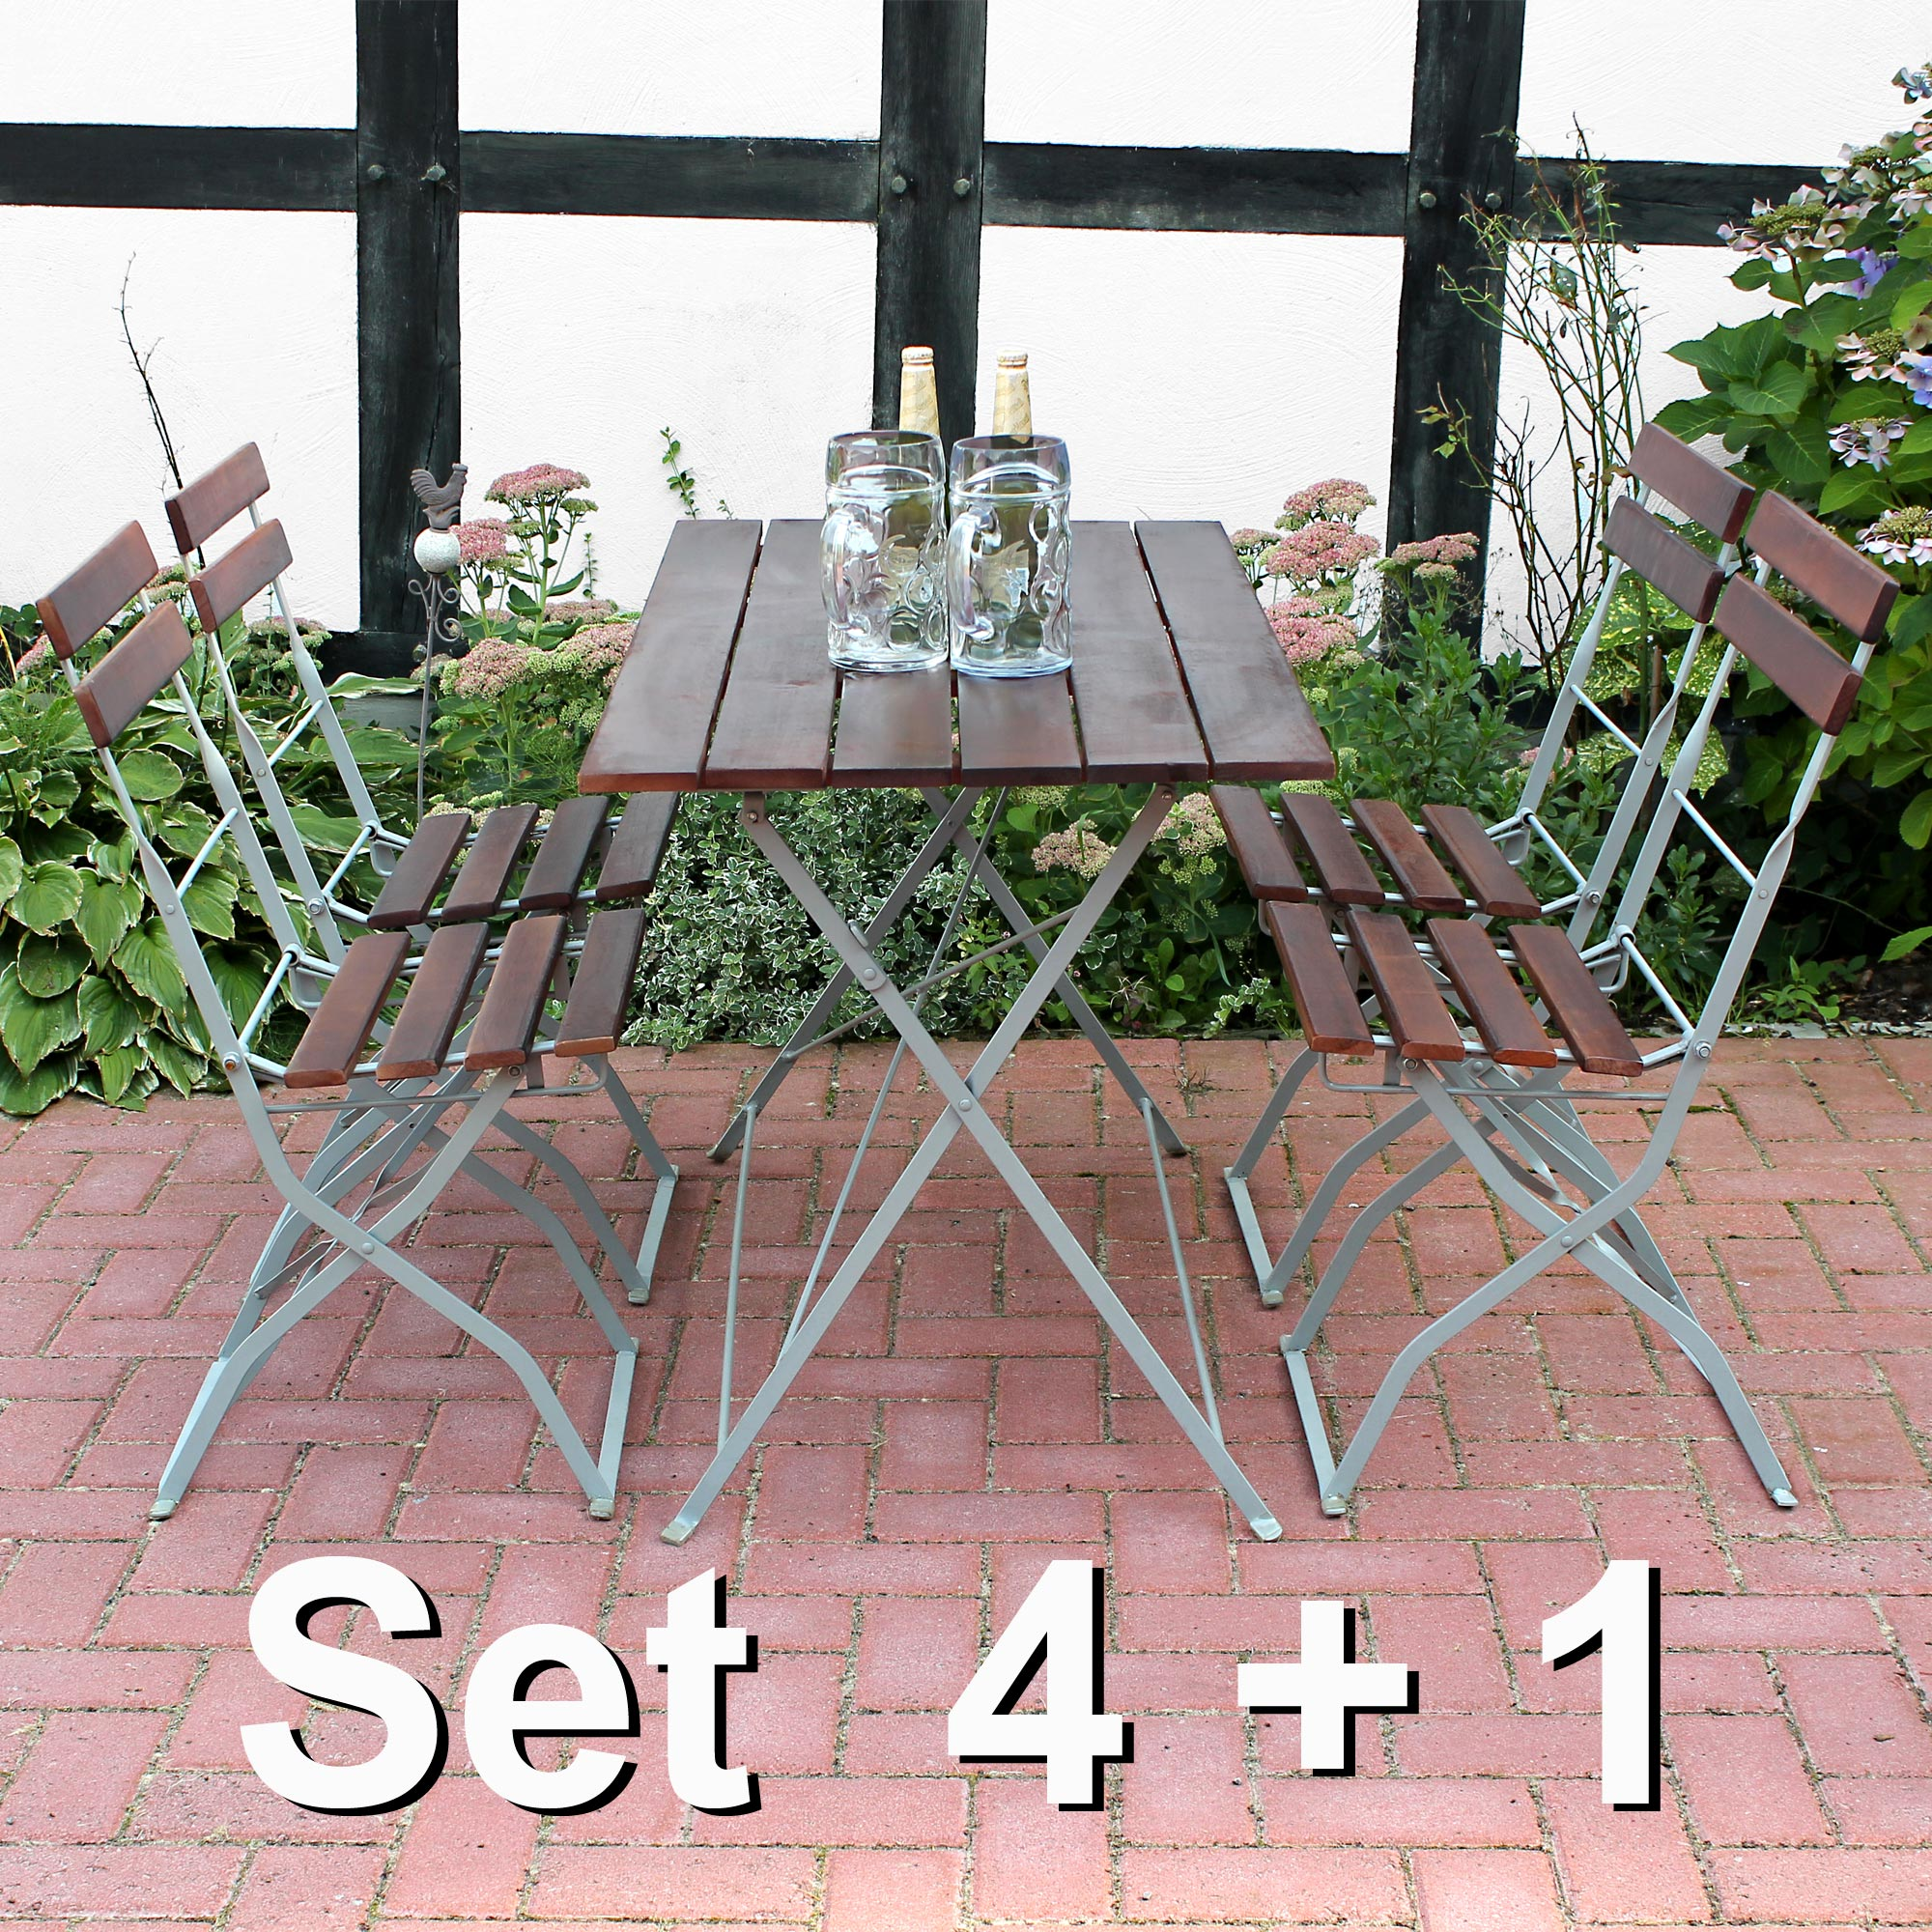 biergarten sitzgruppe tisch 4 st hle gartenm bel garten. Black Bedroom Furniture Sets. Home Design Ideas